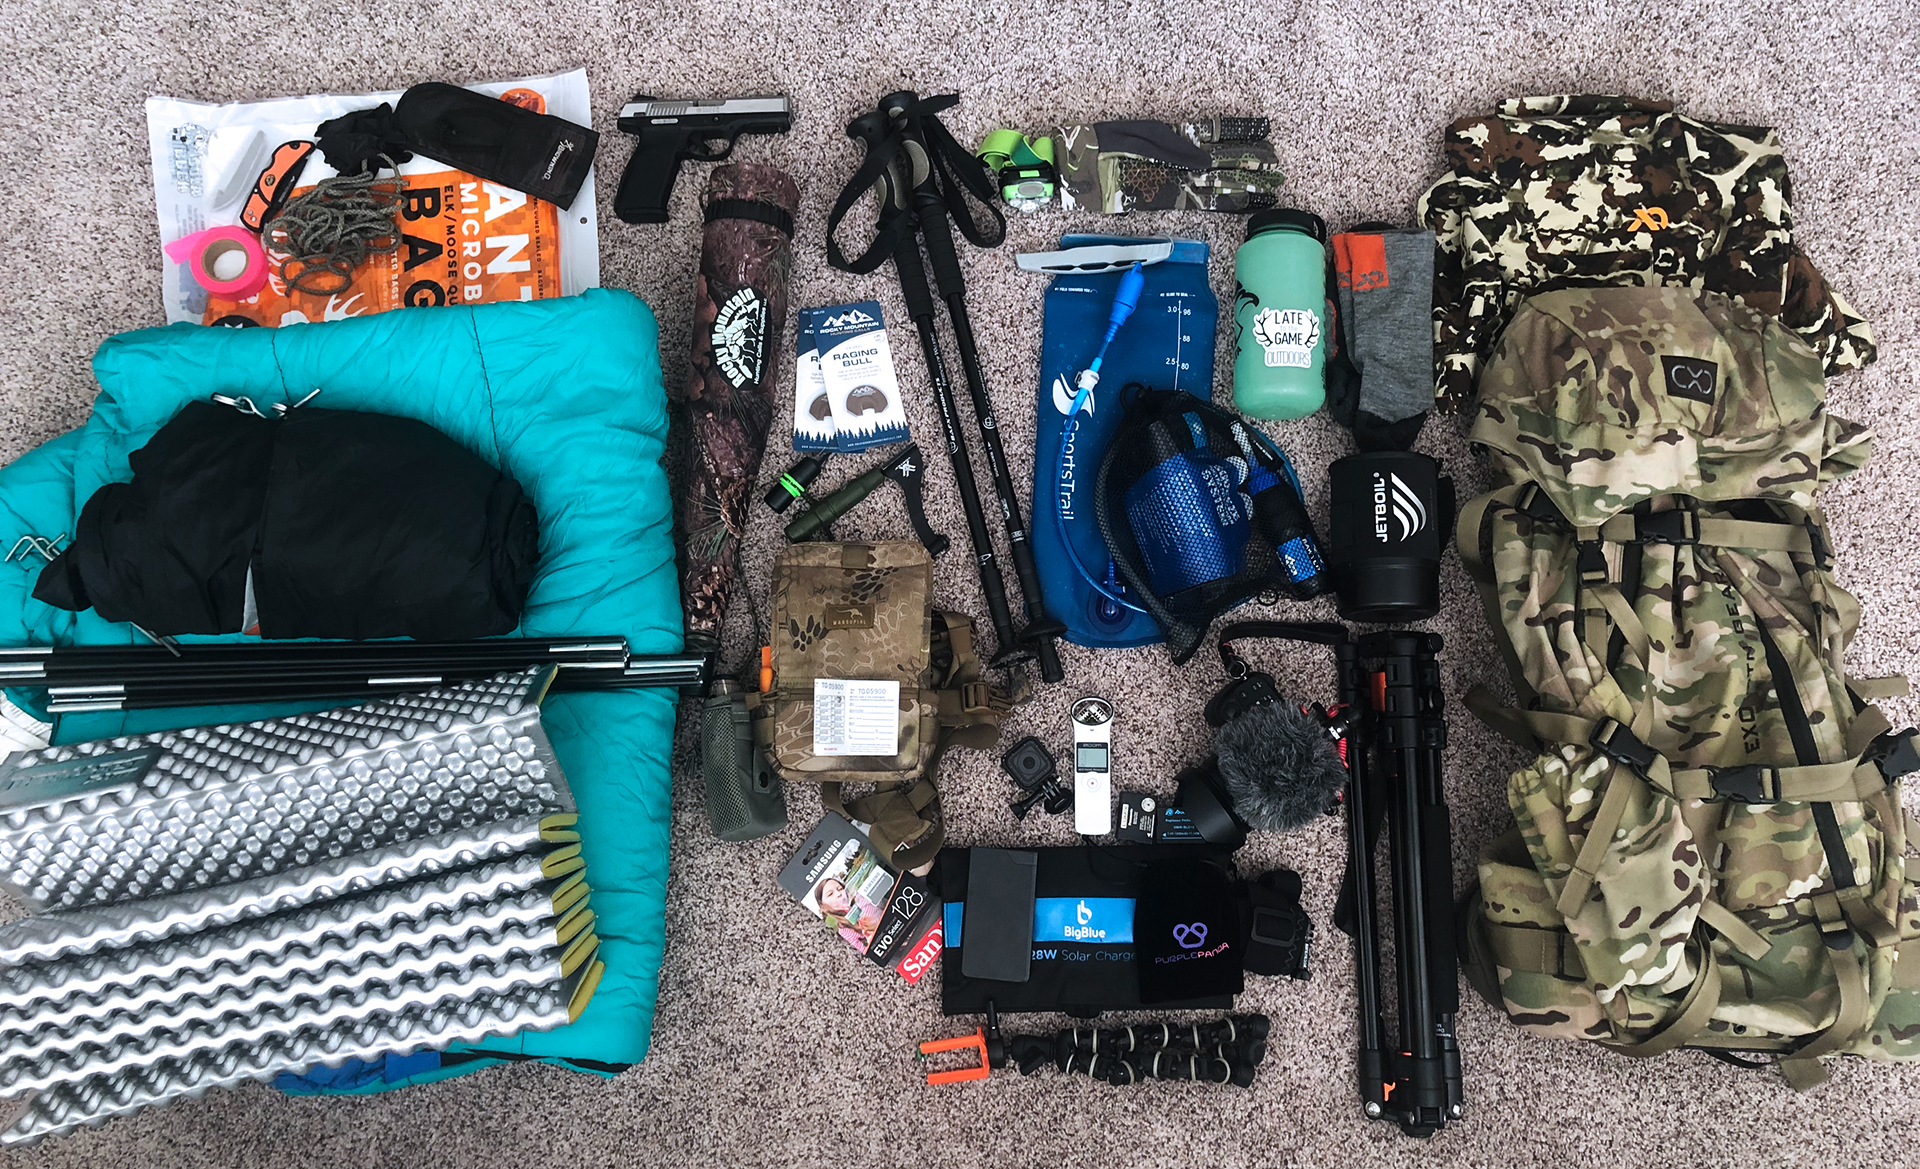 If it looks like a lot of stuff, that's because it is…but that Exo Pack makes it all feel much lighter!